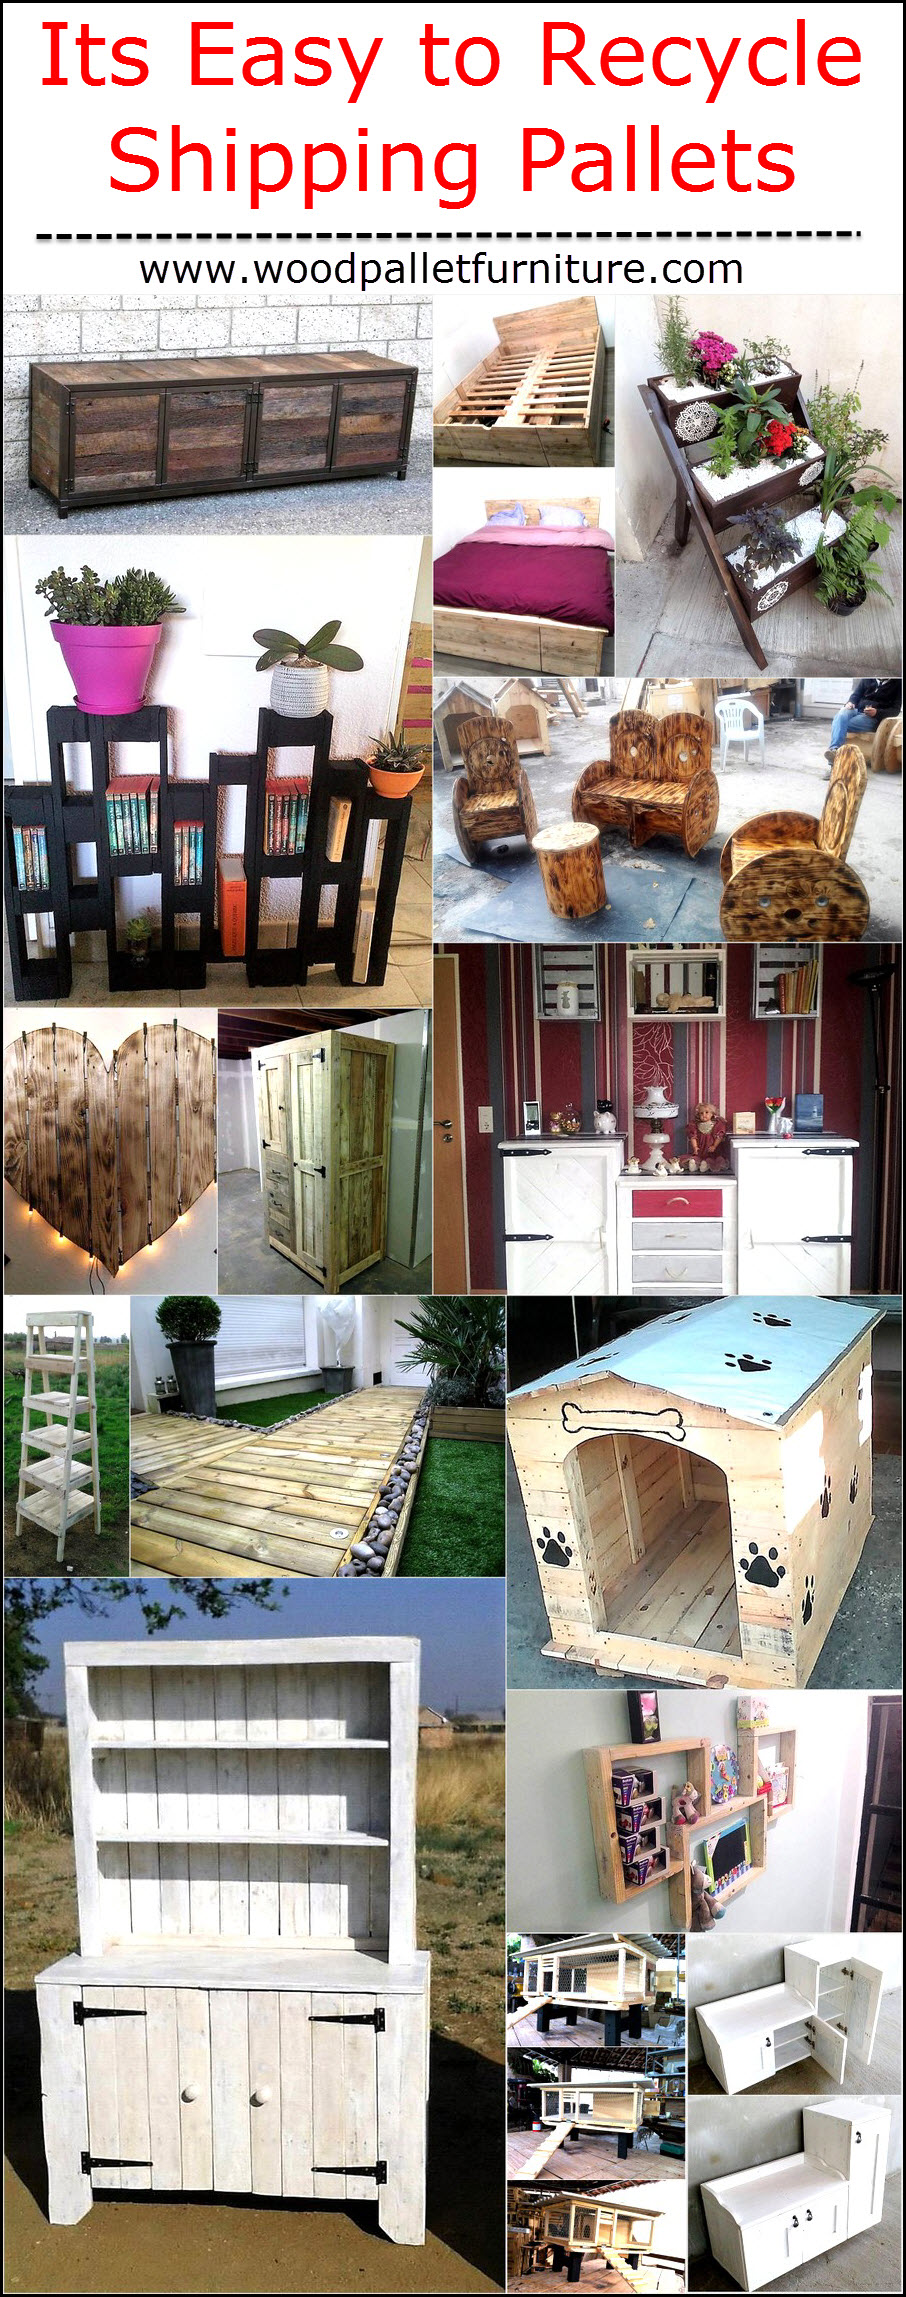 its-easy-to-recycle-shipping-pallets